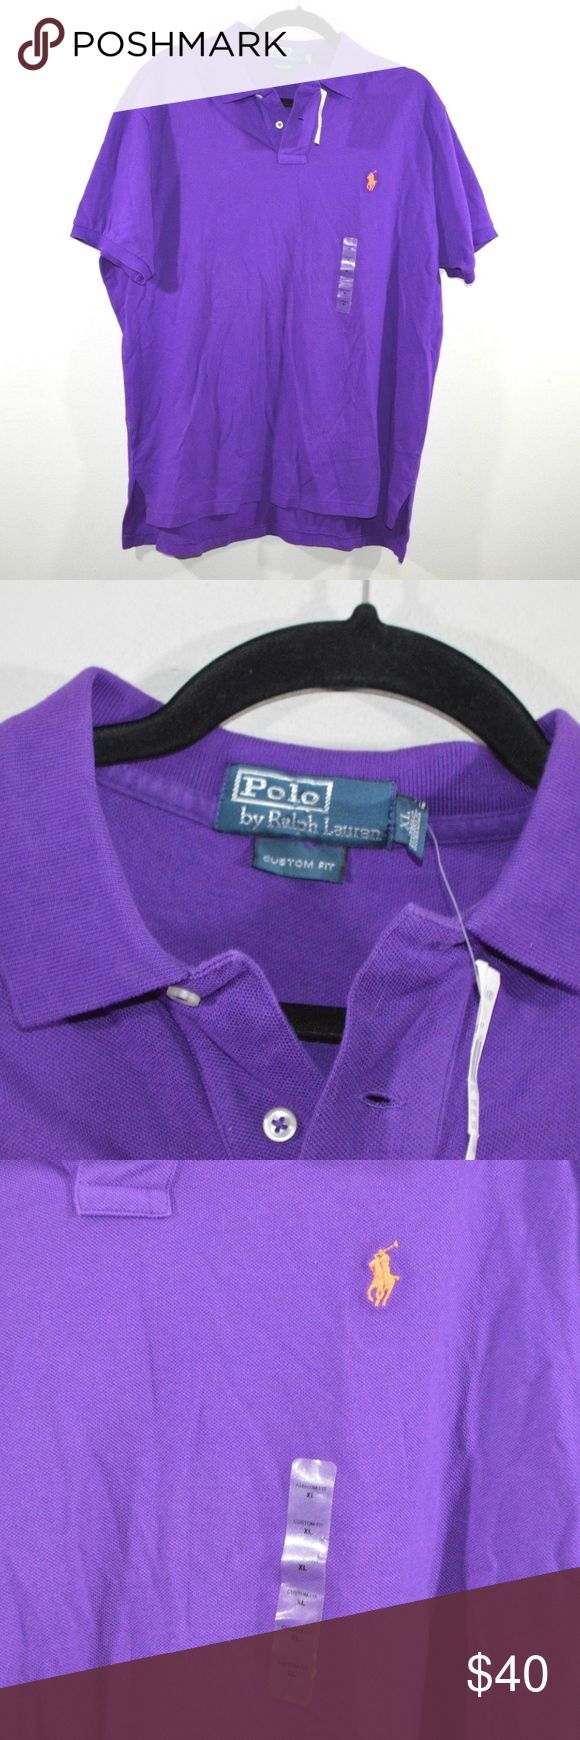 New Ralph Lauren Custom Fit Golf Polo Shirt XL Polo Ralph Lauren Custom Fit Golf Shirt  Excellent shirt  New  Purple with an Orange Pony logo  The size is XL and the measurements are 24 inches underarm to underarm and 28.5 inches top to bottom  Cotton  Check out my other items for sale!  GreenTub Polo by Ralph Lauren Shirts Polos